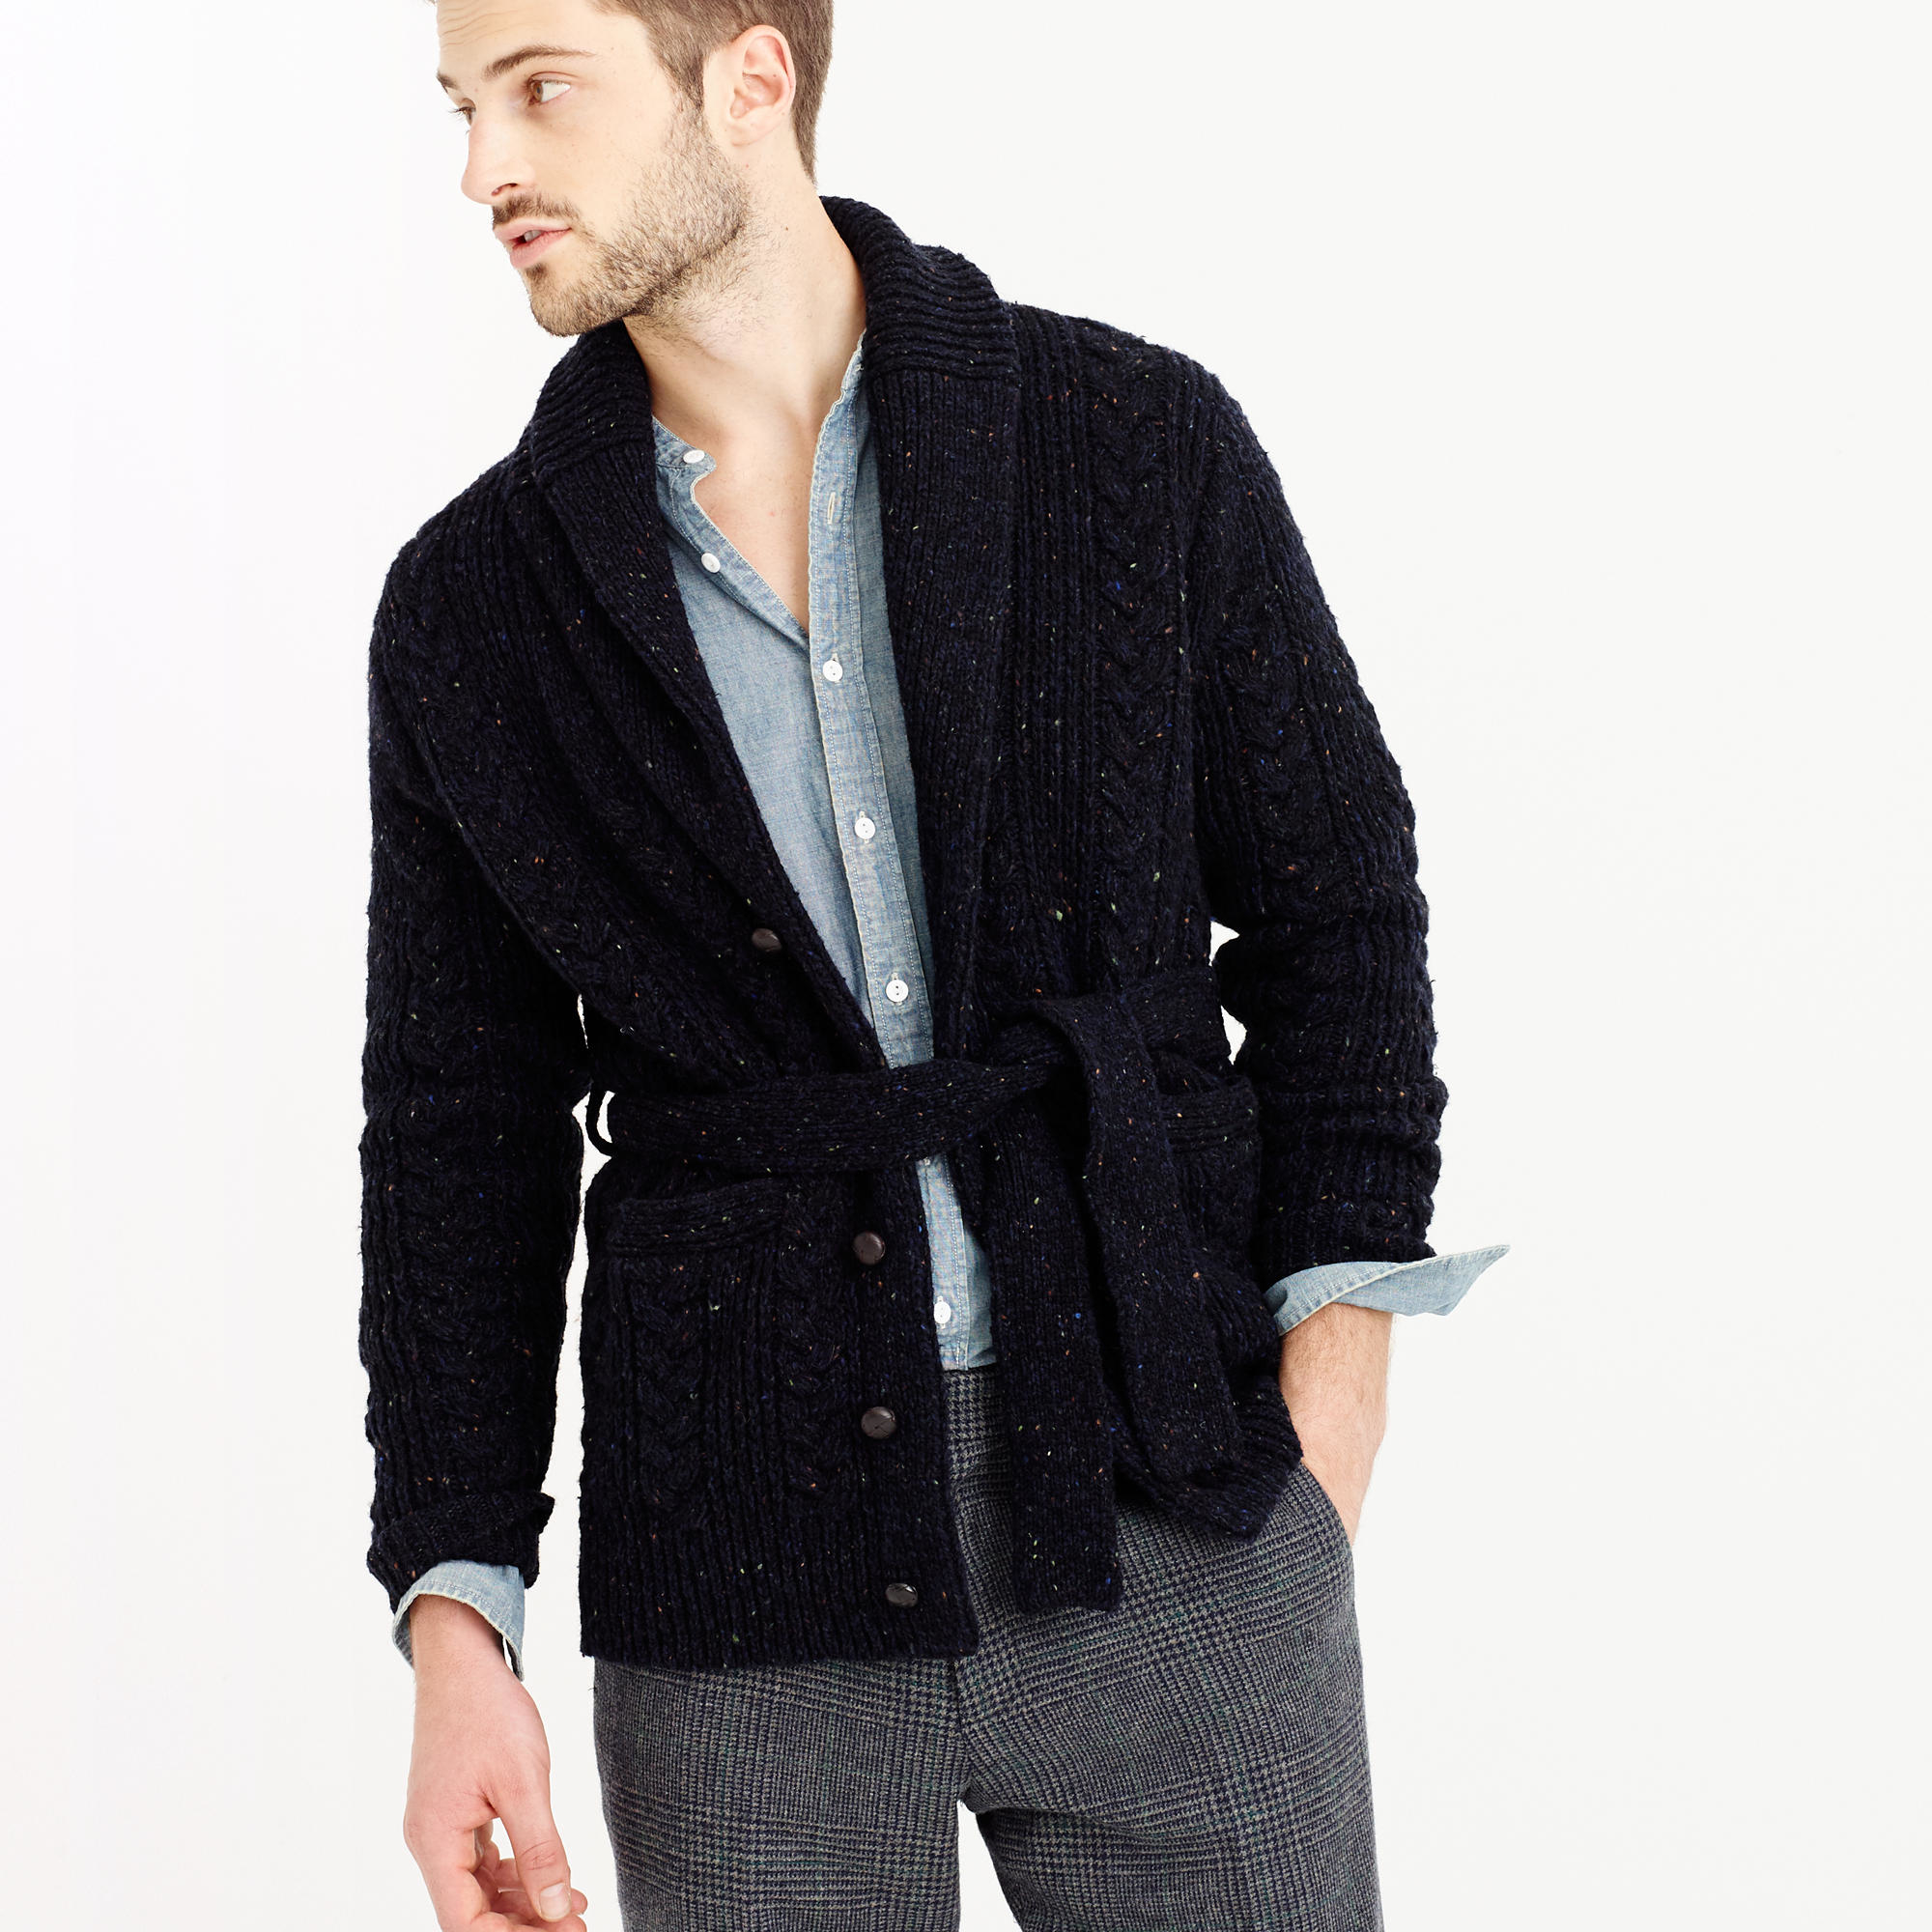 Shawl Collared Belted Cardigan - Reviews. Our Shawl Collar Belted Cardigan is an easy to wear and casual style with a sophisticated edge. Comfortable and cosy due to its wrap around fashion, it can be fastened to the wearers own figure and shape.5/5.